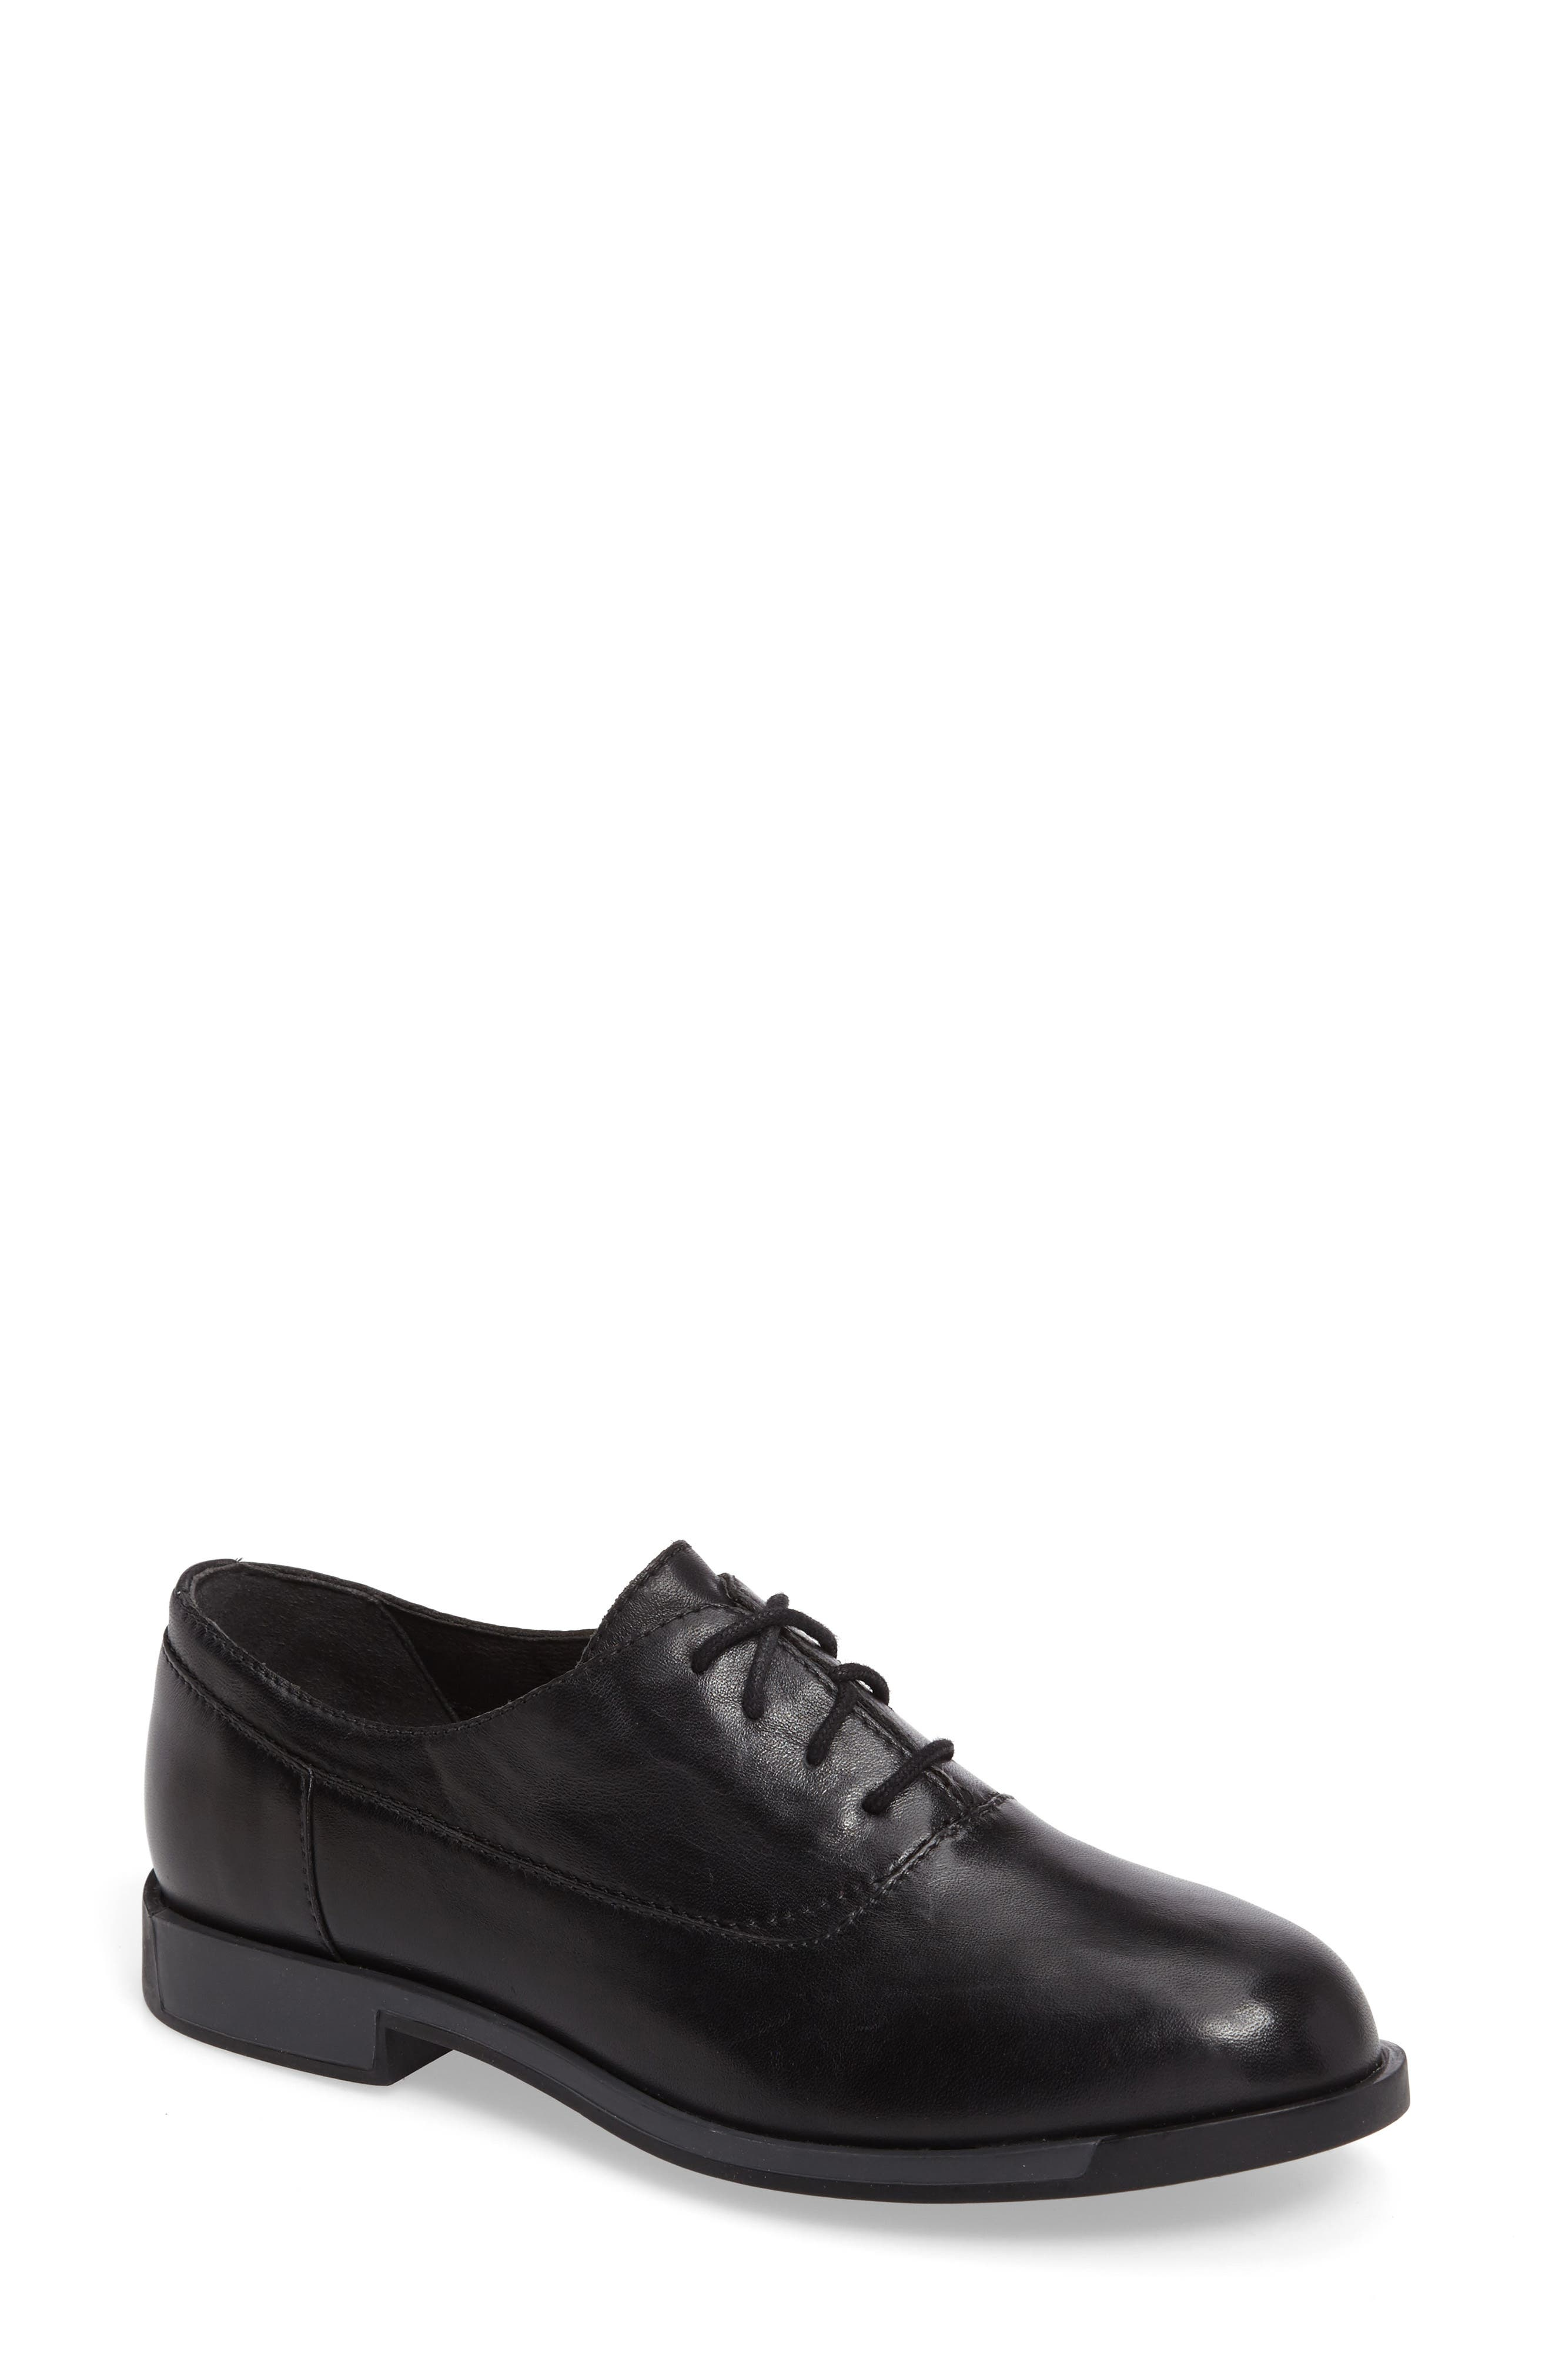 Alternate Image 1 Selected - Camper 'Bowie' Oxford (Women)